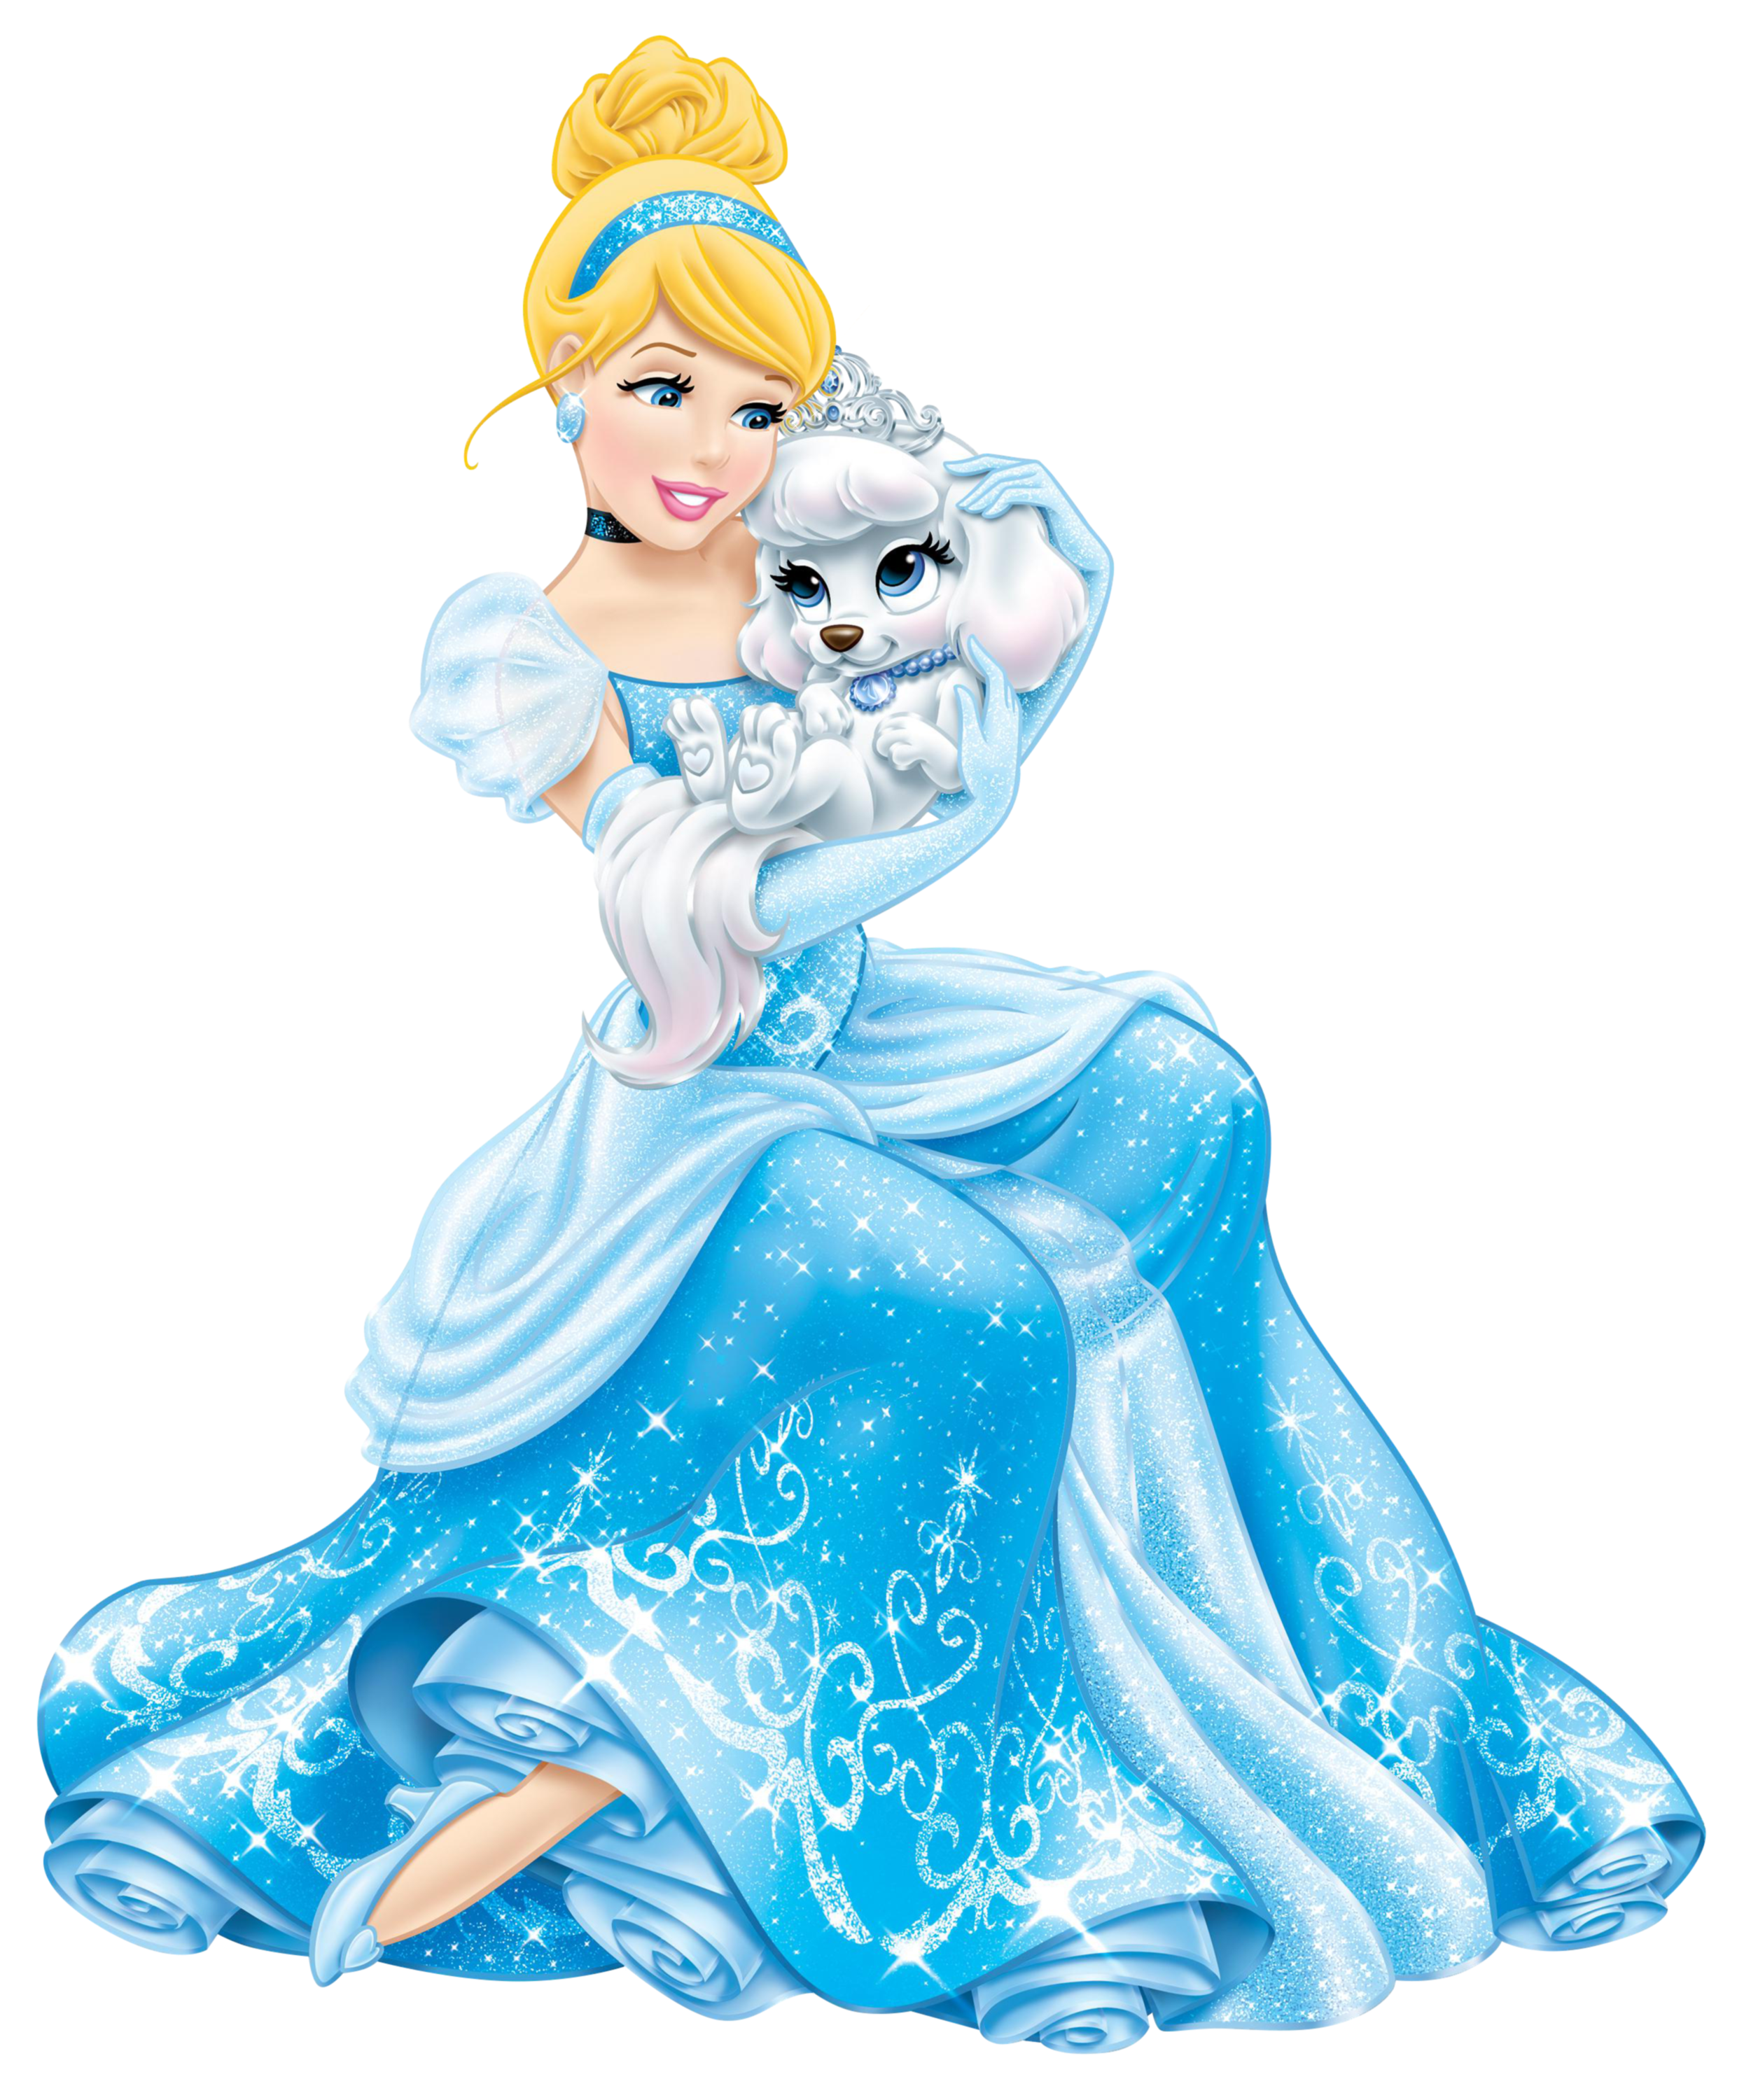 Disney Princess Cinderella with Cute - Cinderella PNG